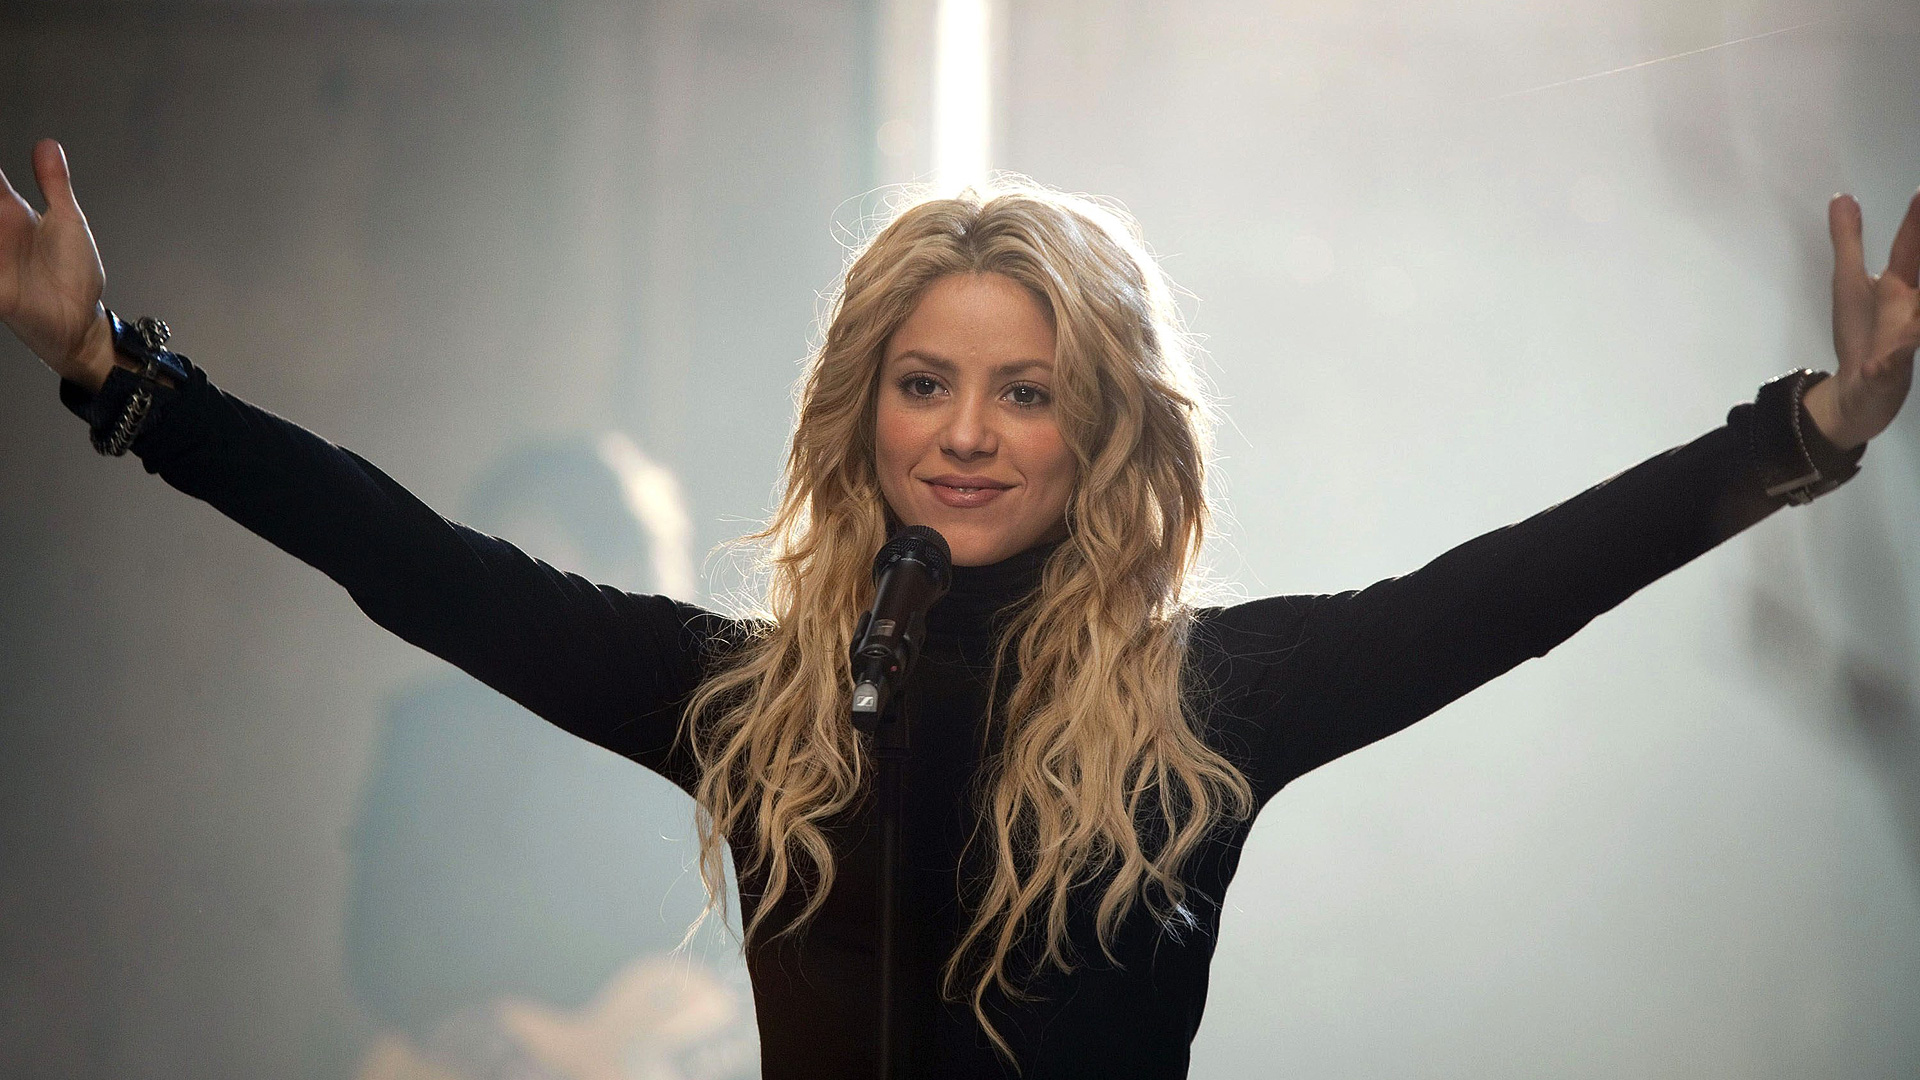 Shakira Wallpaper 1920 x 1080 - WallpaperSafari